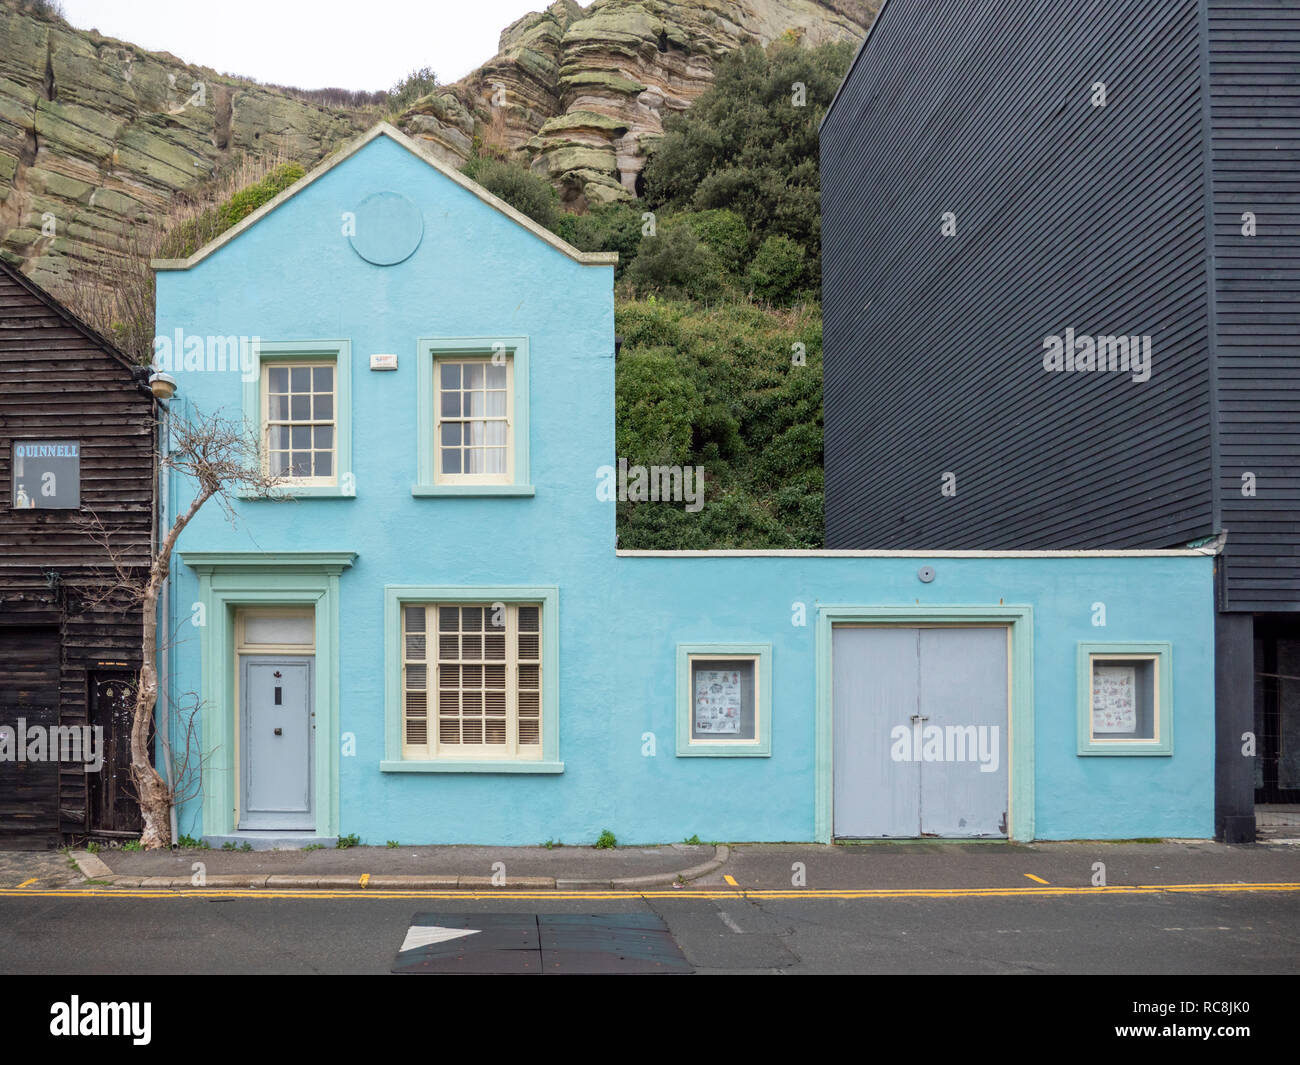 Colourful houses and buildings in blue and black at Rock a Nore Road Hastings East Sussex UK - Stock Image